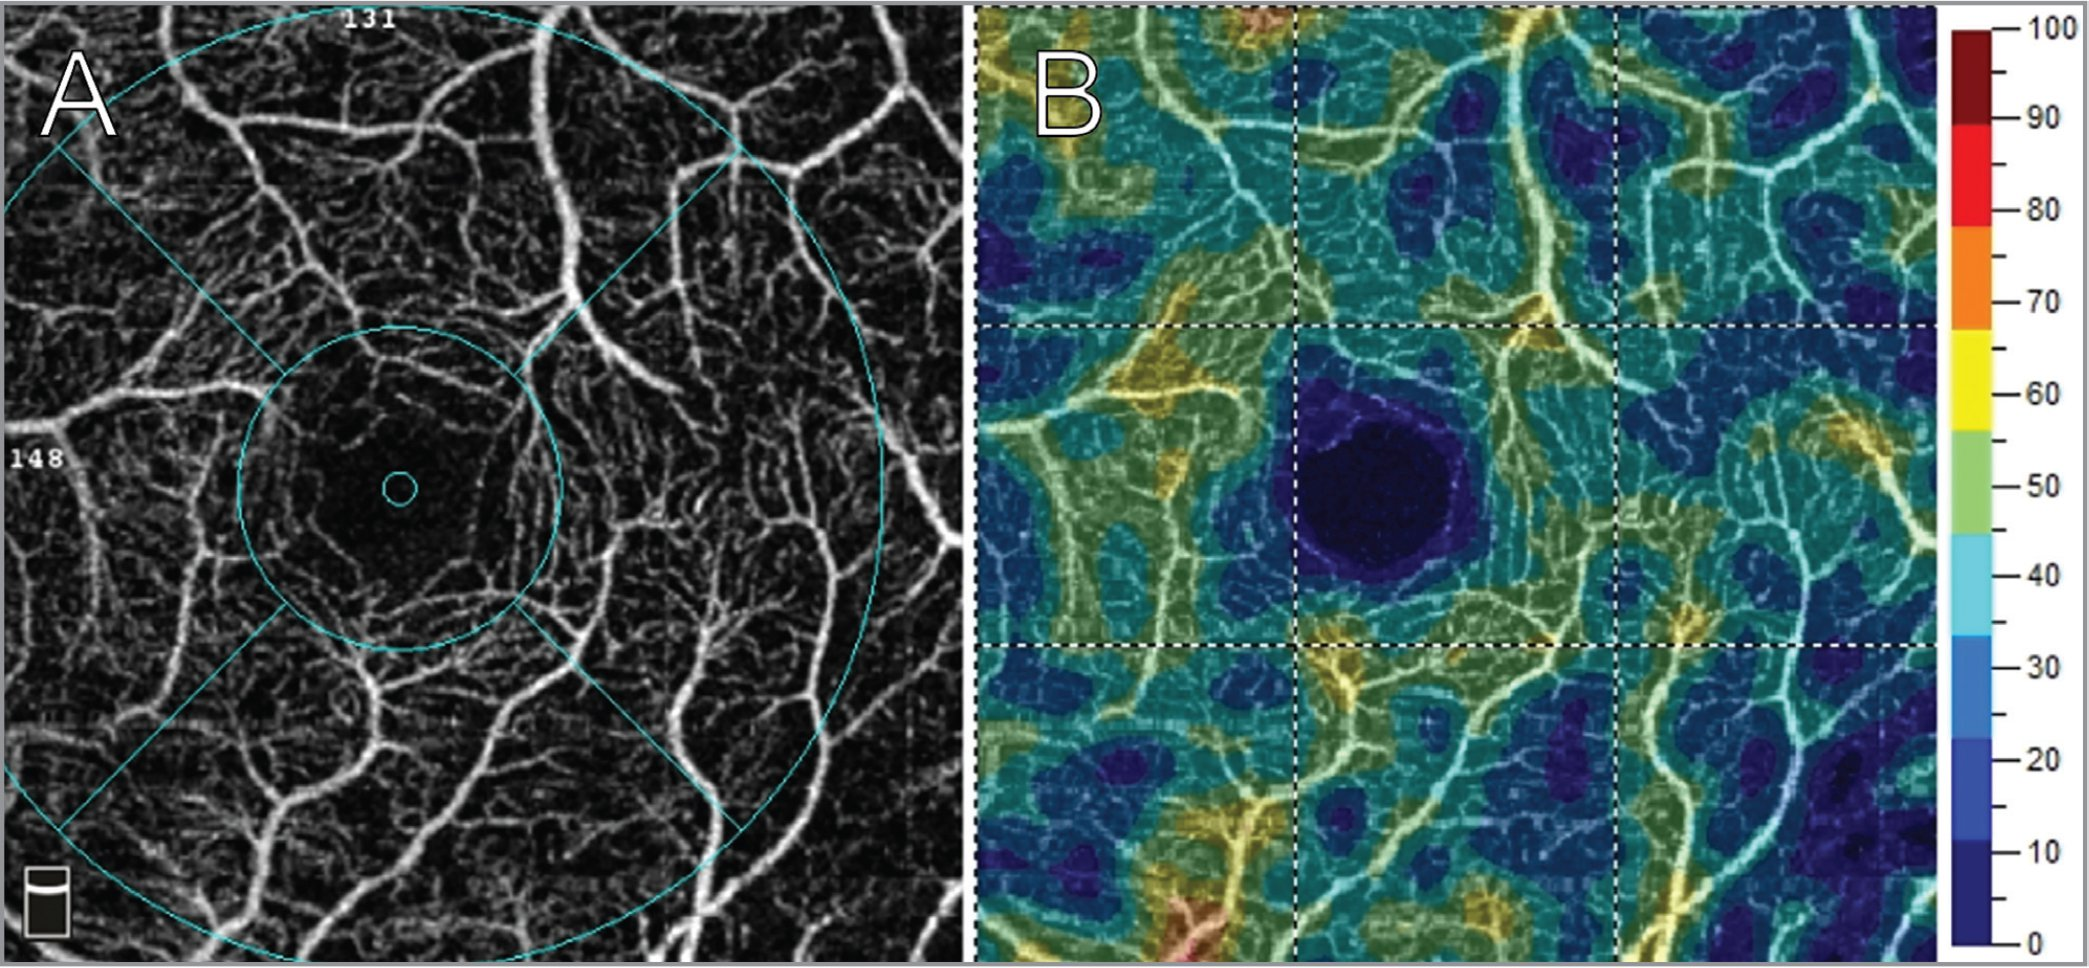 (A) 3 mm × 3 mm optical coherence tomography angiography image of the left macular superficial capillary plexus in a patient with retinitis pigmentosa. (B) Vessel density map indicating percentage density of blood vessels. Parafoveal capillary perfusion density was measured at 40.74%.